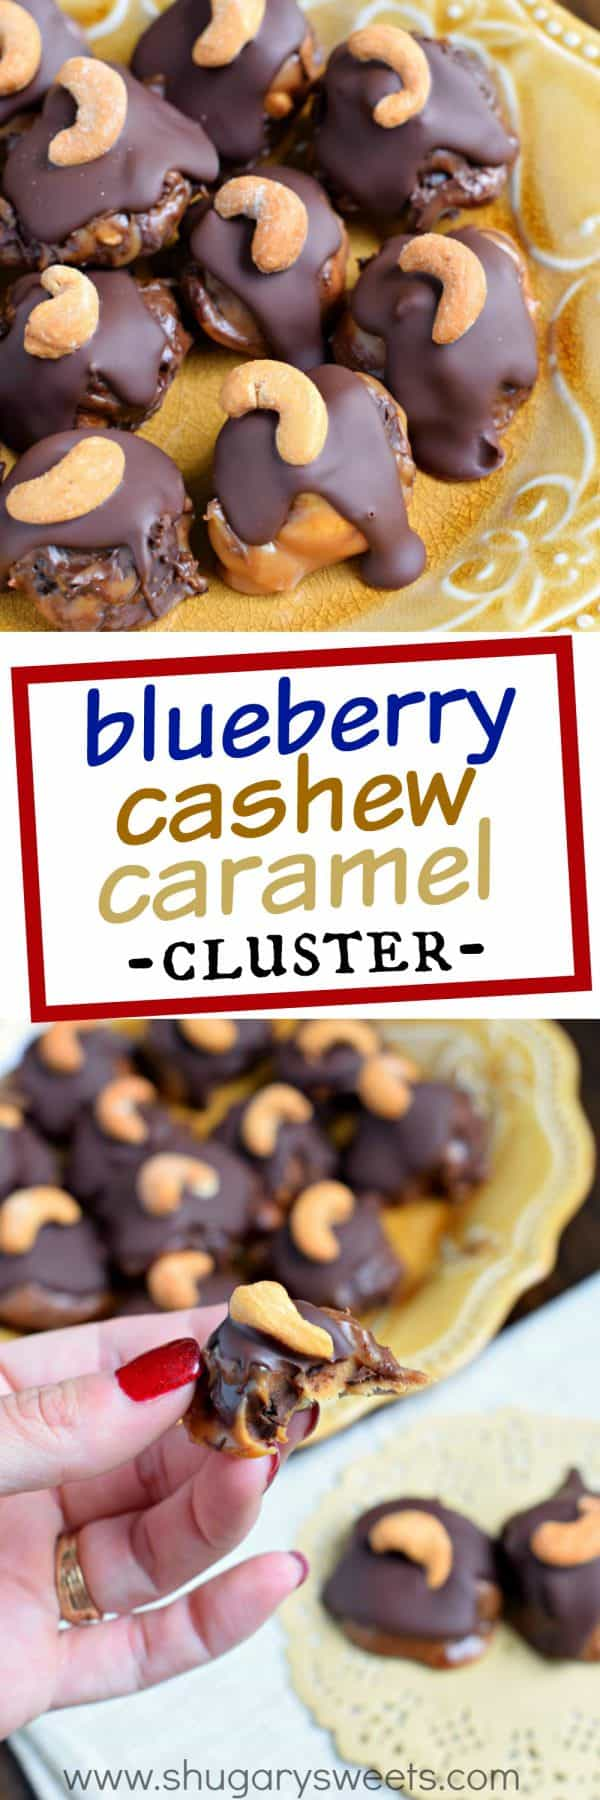 Blueberry Cashew Caramel Clusters with DOVE Chocolate - Shugary Sweets